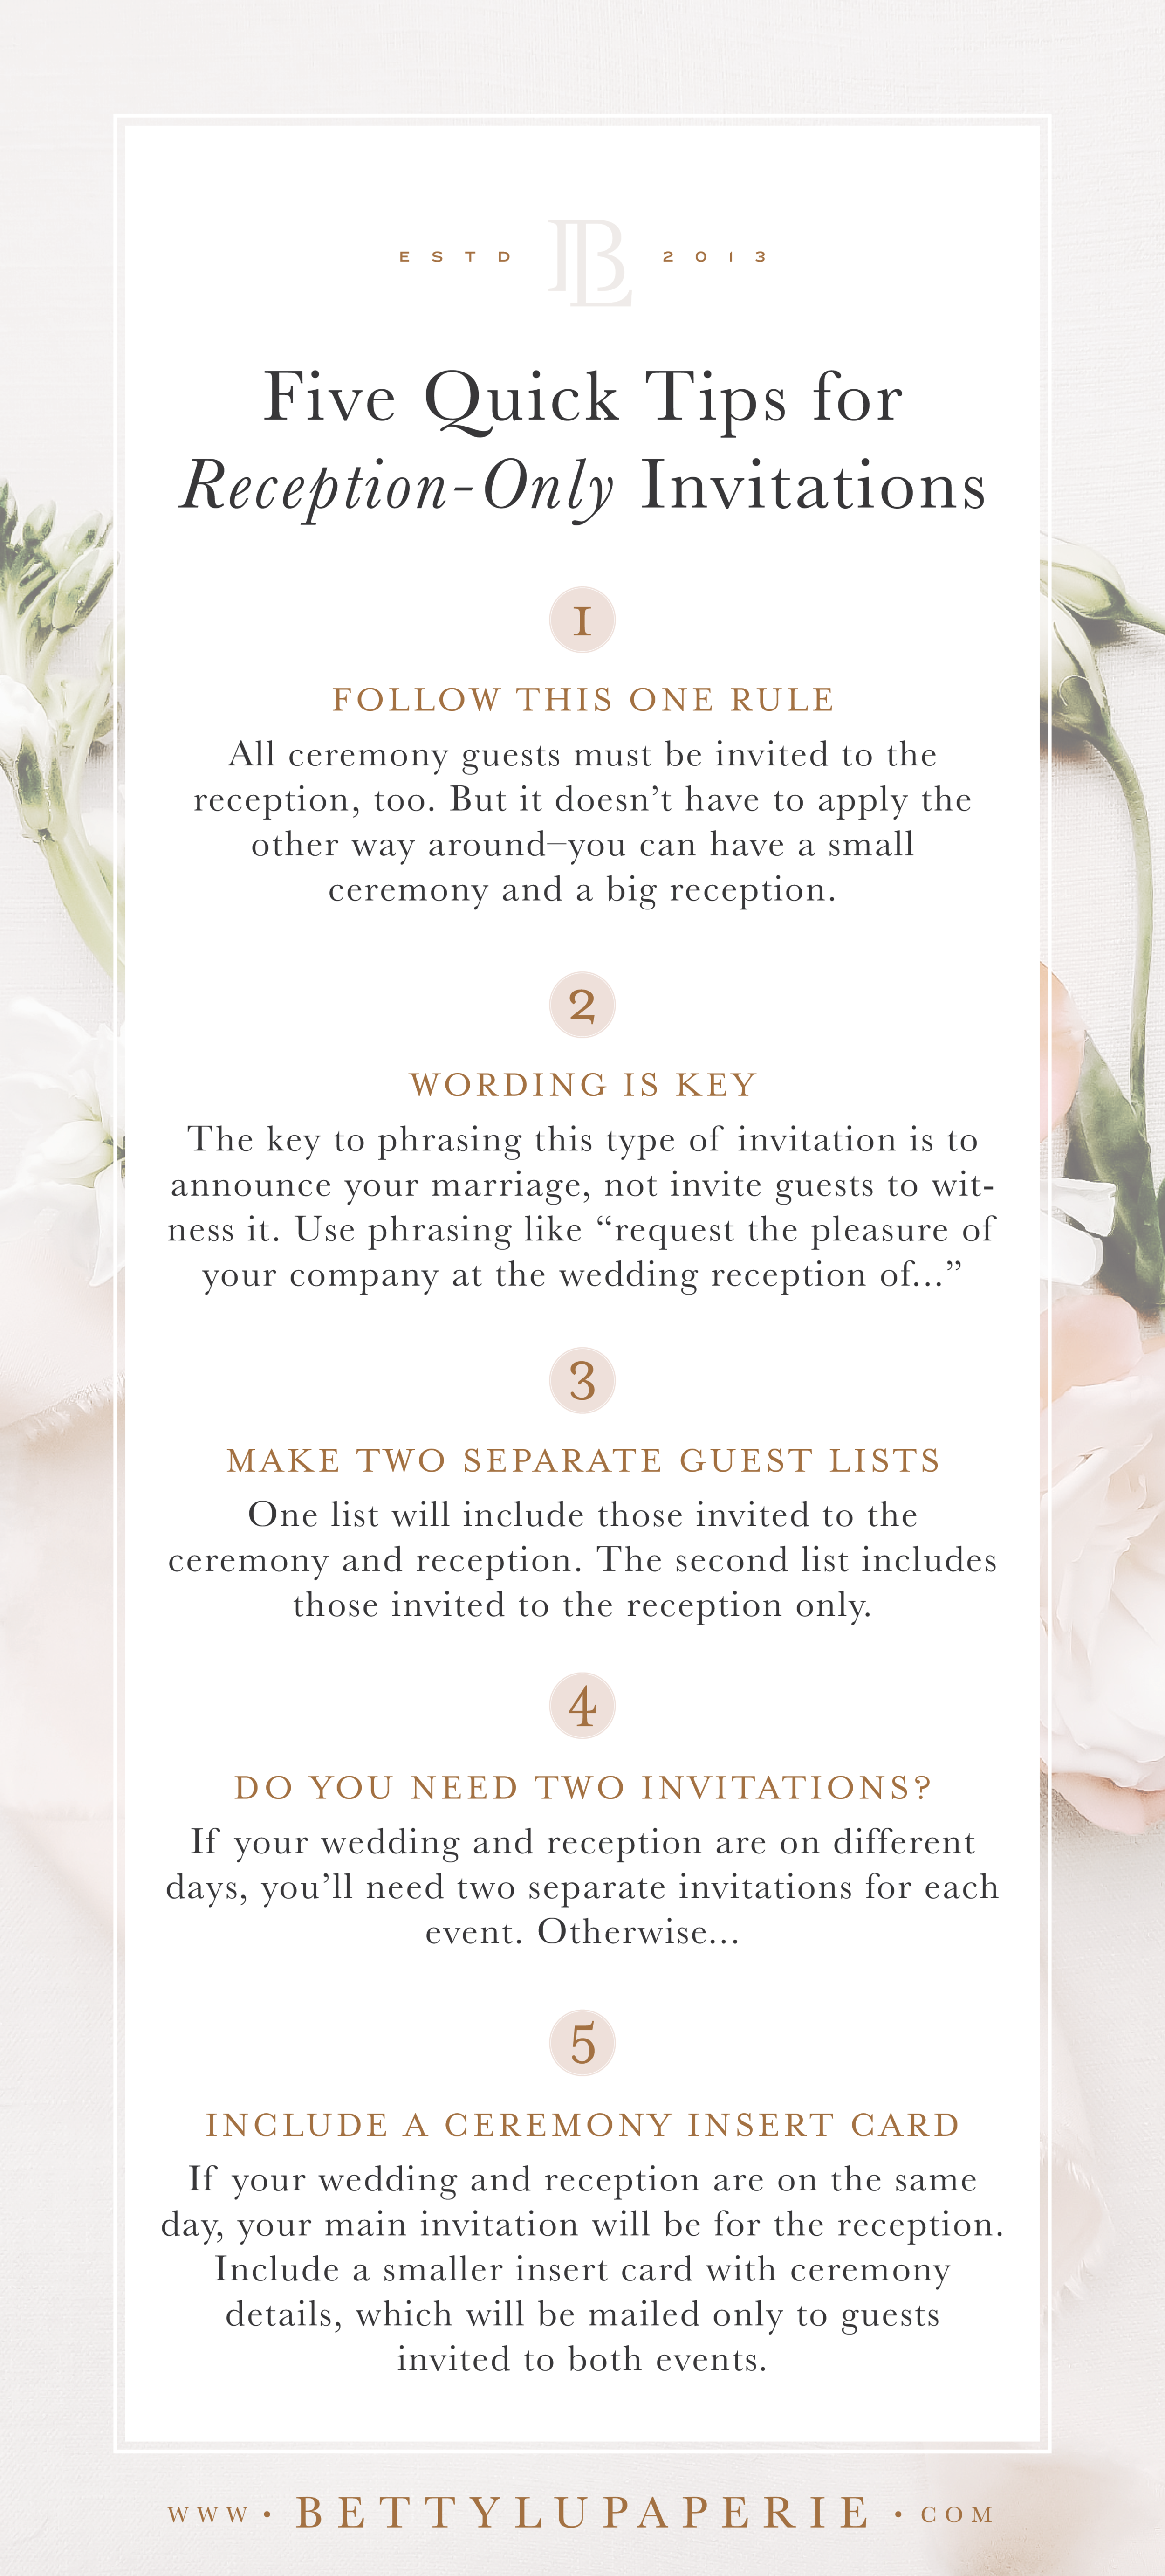 Wedding Invitation Wording For Reception Only Floral Wedding Invitations From Betty Lu Paperie